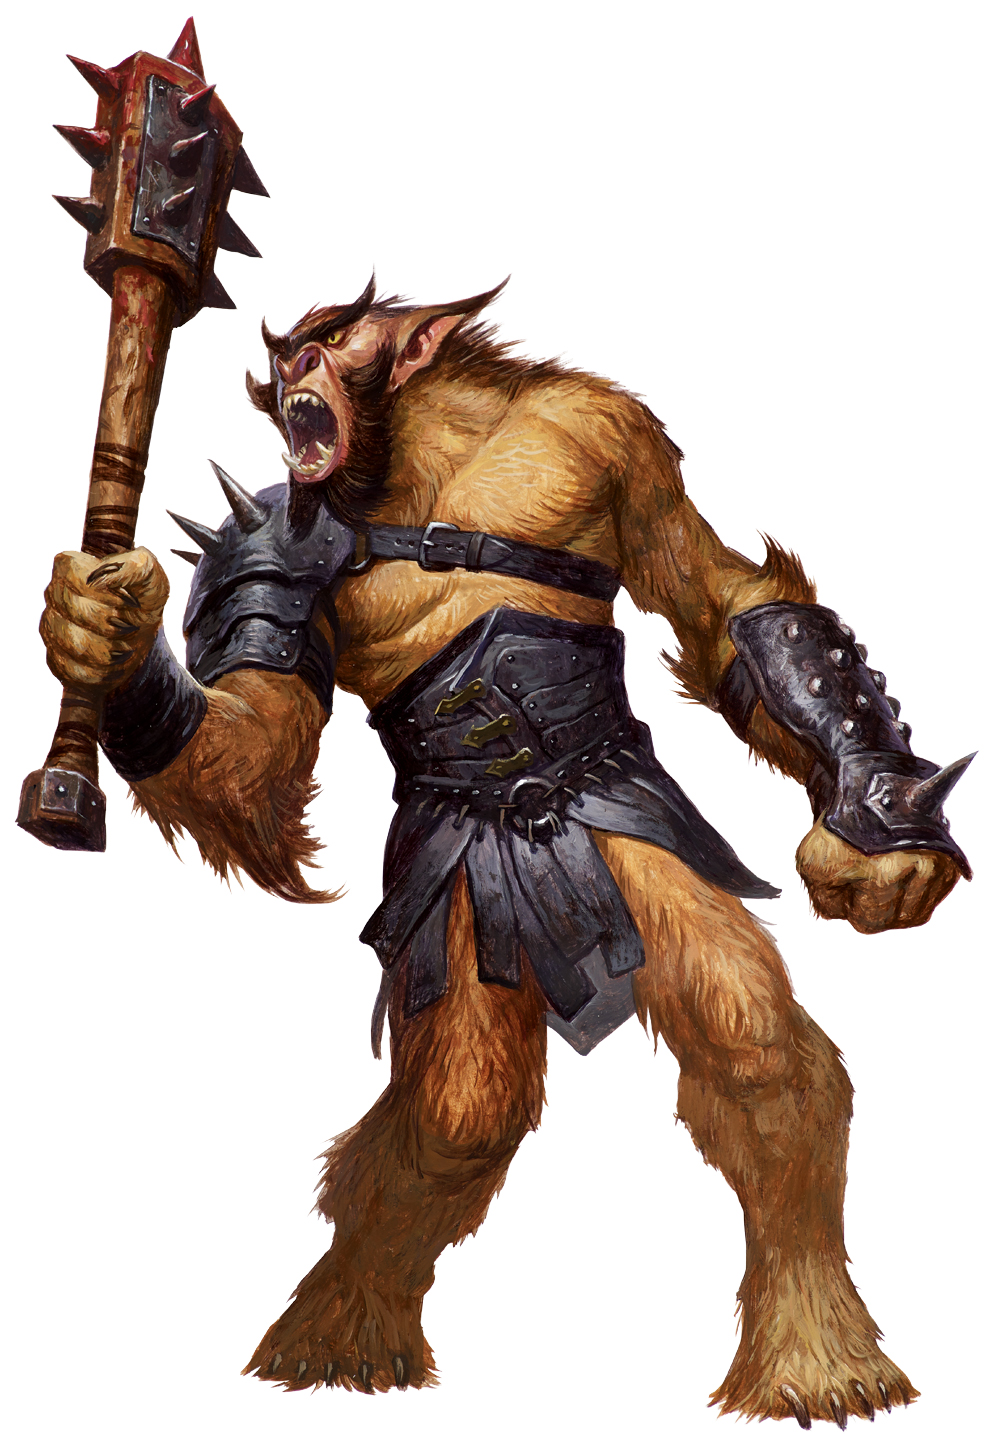 Monster_Manual_5e_-_Bugbear_-_p33.jpg